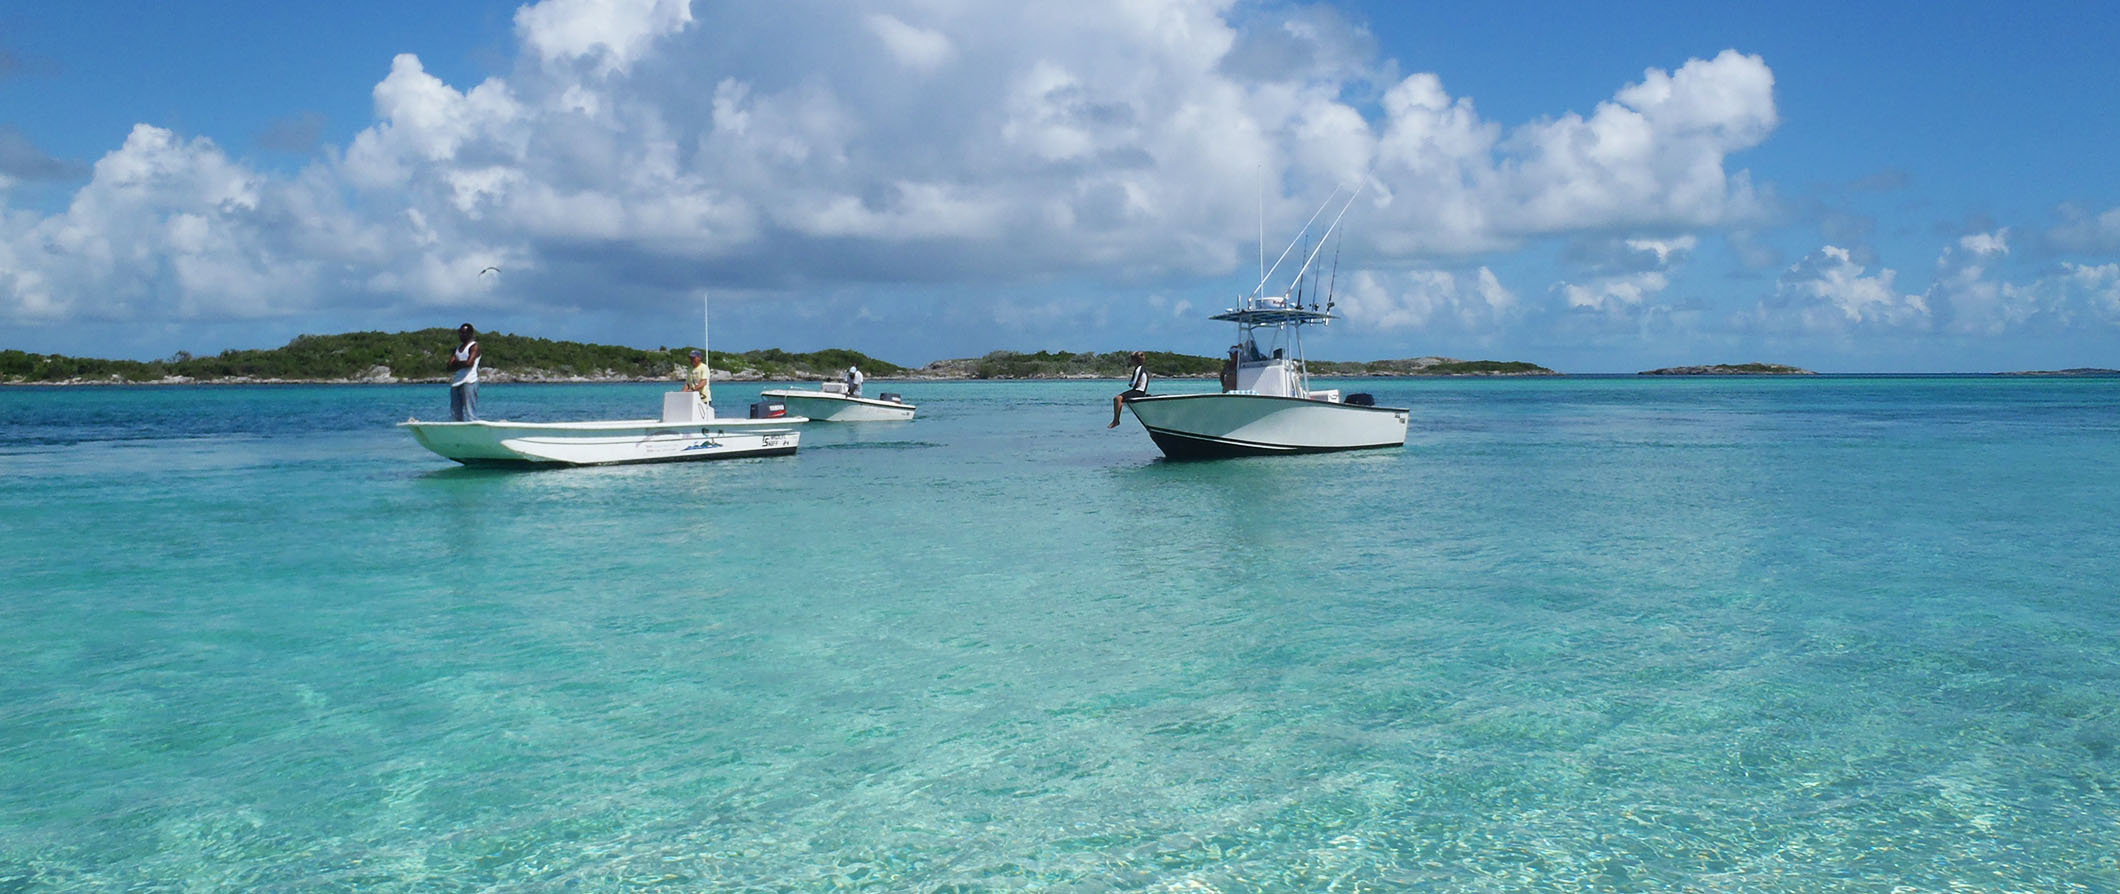 people fishing off boats in the bahamas